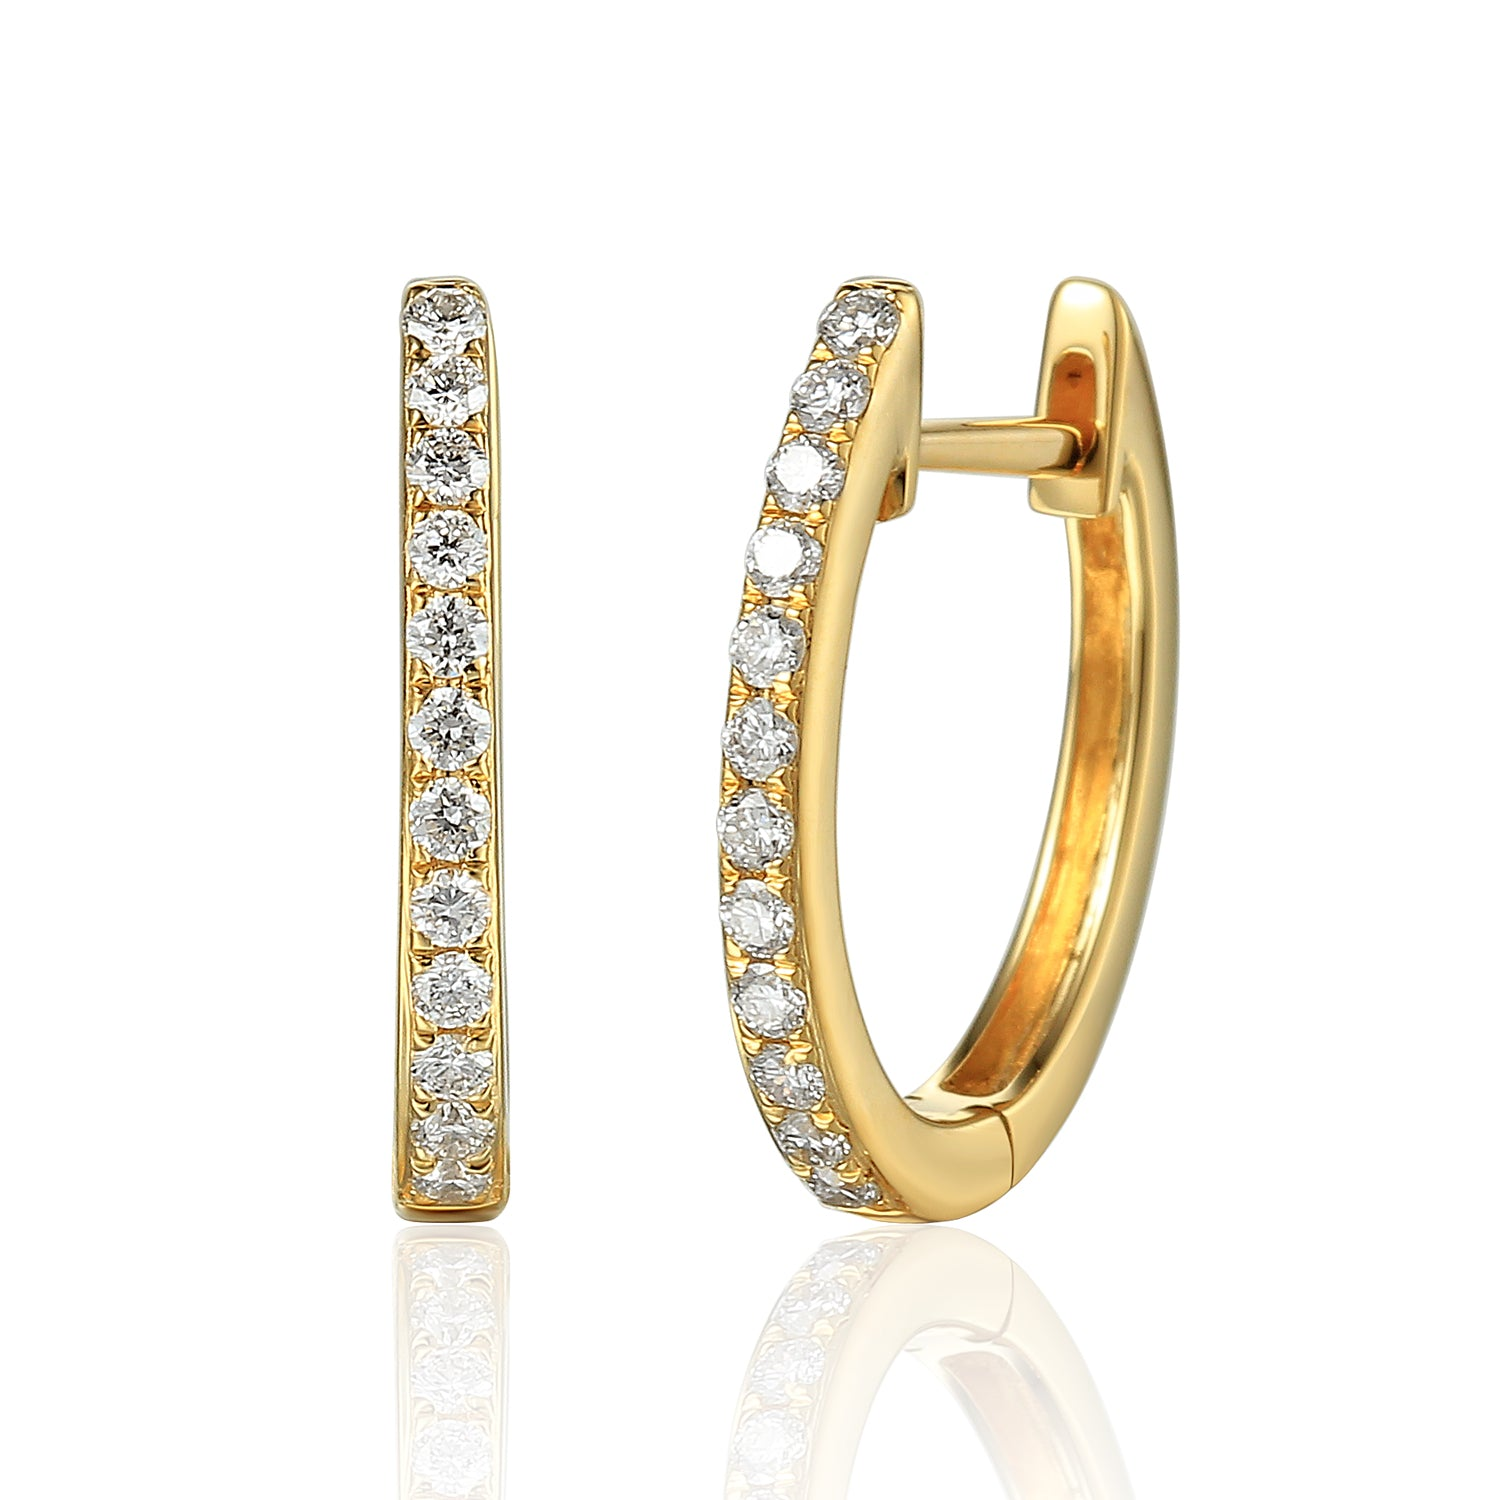 b13305af4 Buy 18ct Yellow Gold Diamond Sleeper Hoop at Tzefira for only £495.00